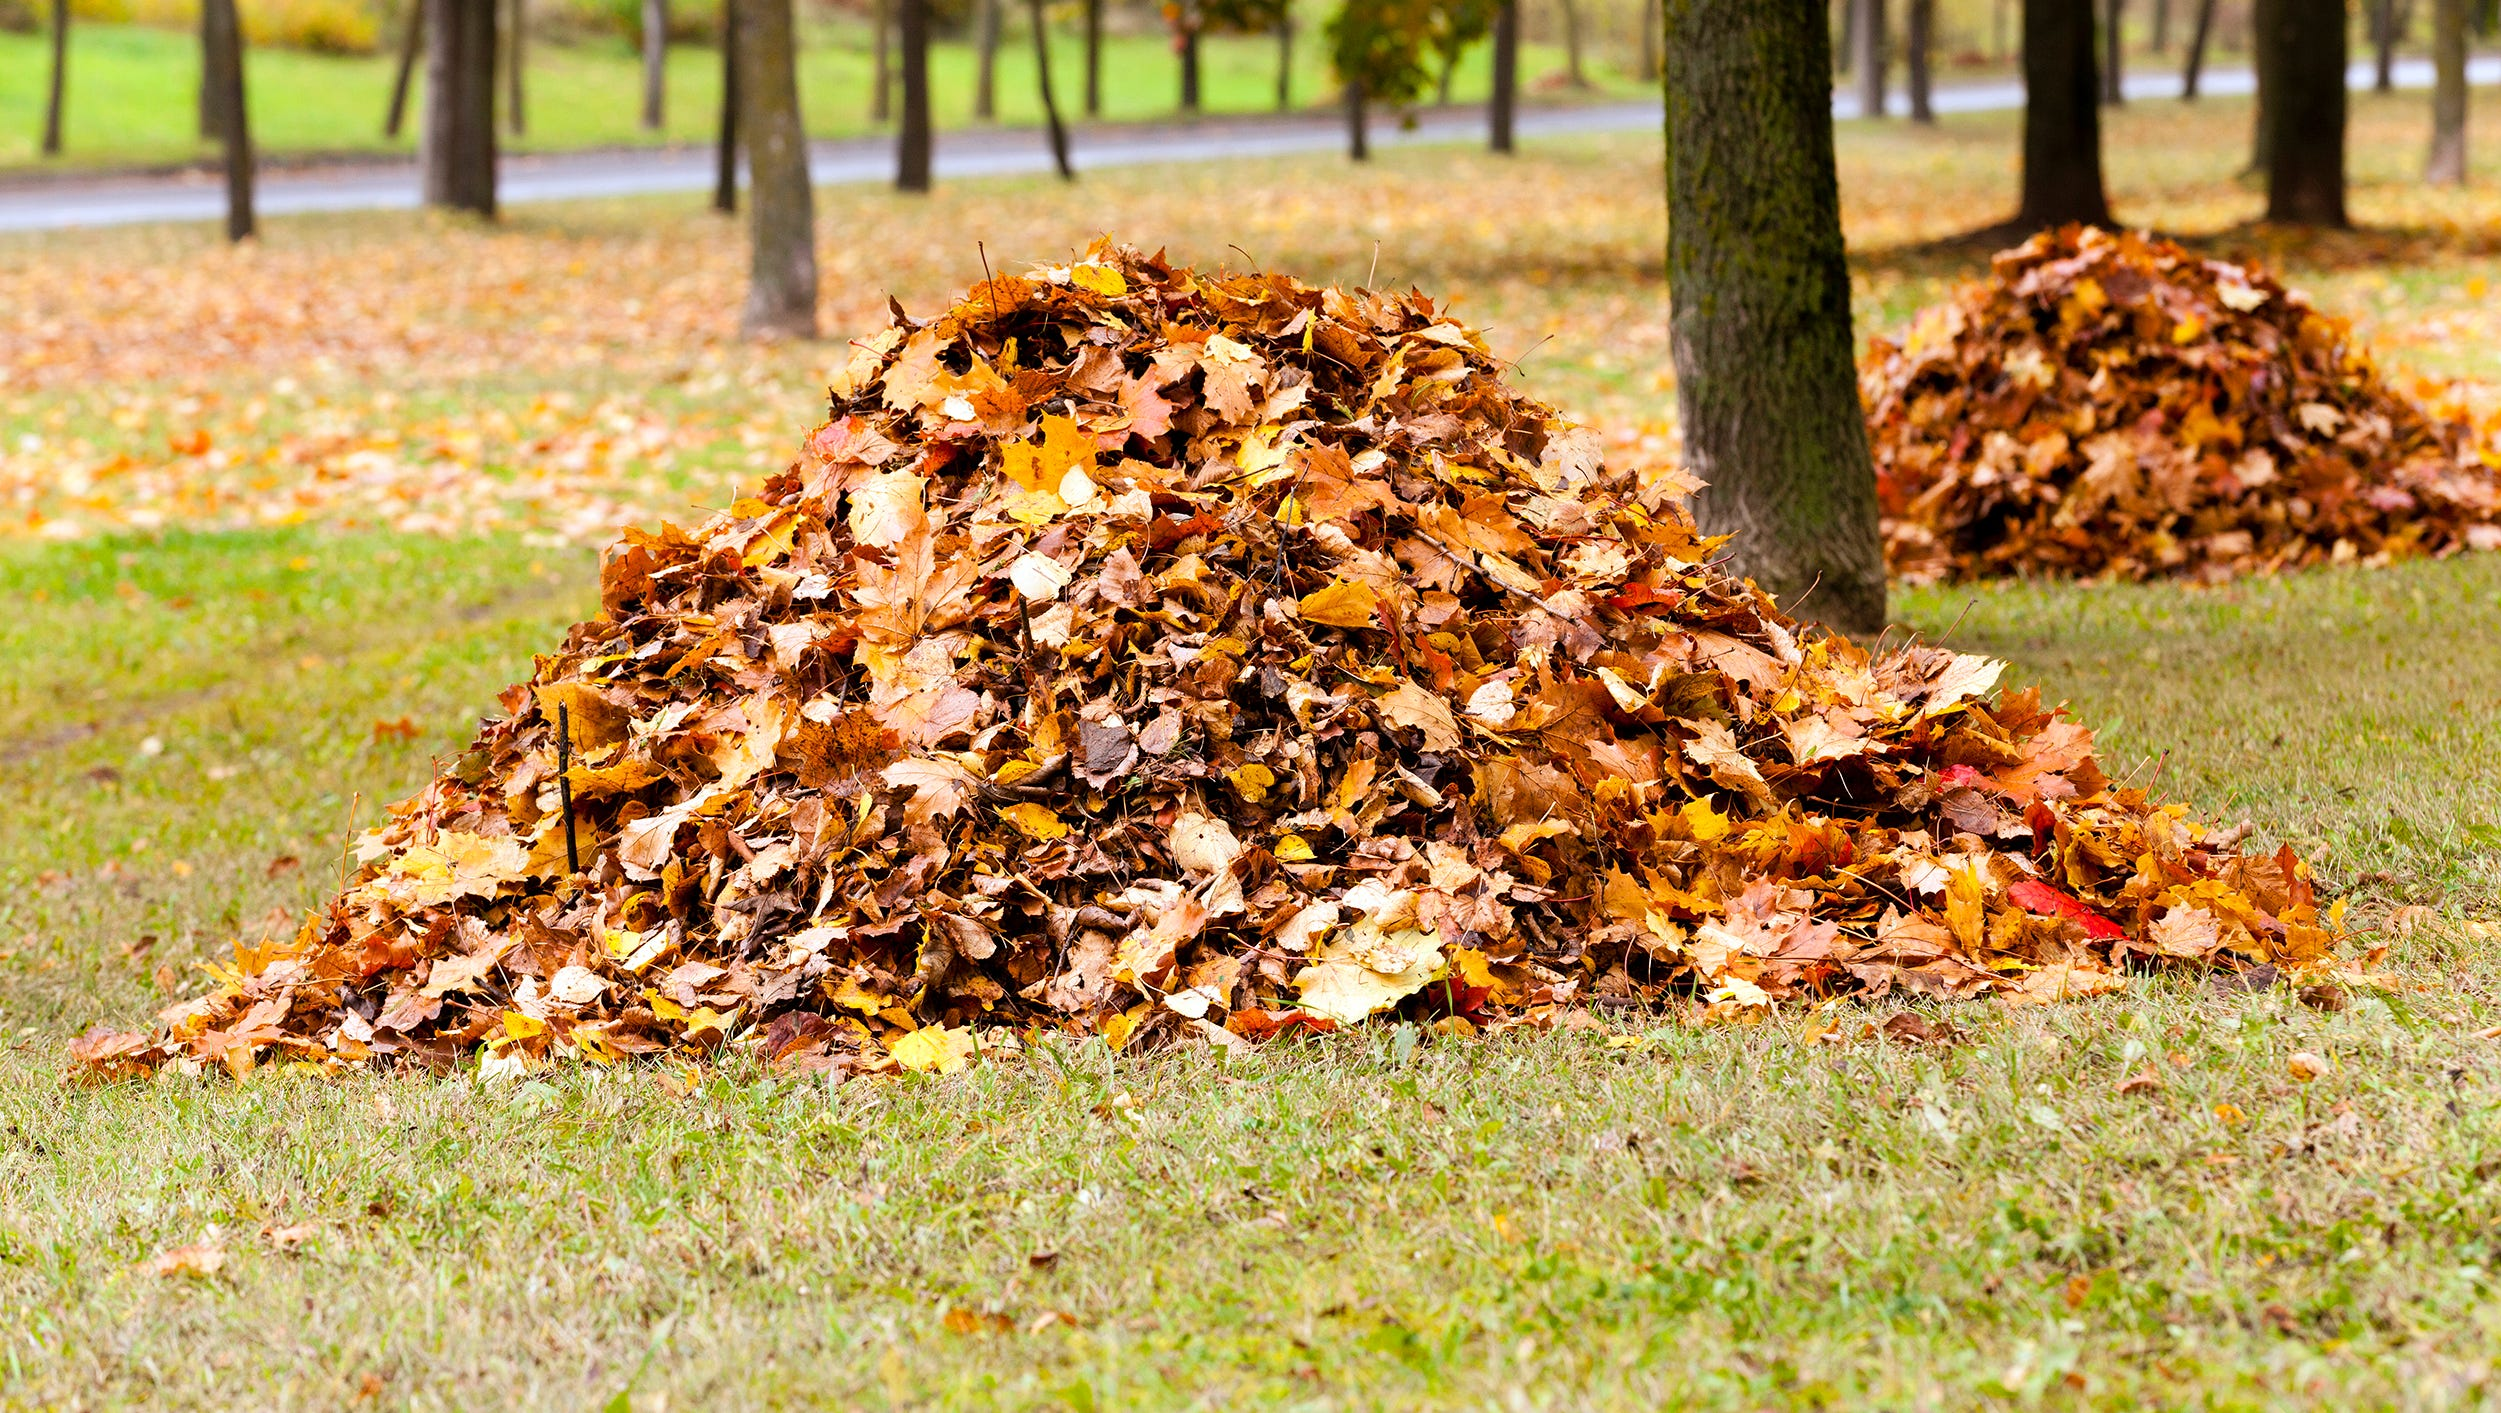 usatoday.com - Mary Bowerman, USA TODAY - Here's why you should avoid raking your leaves